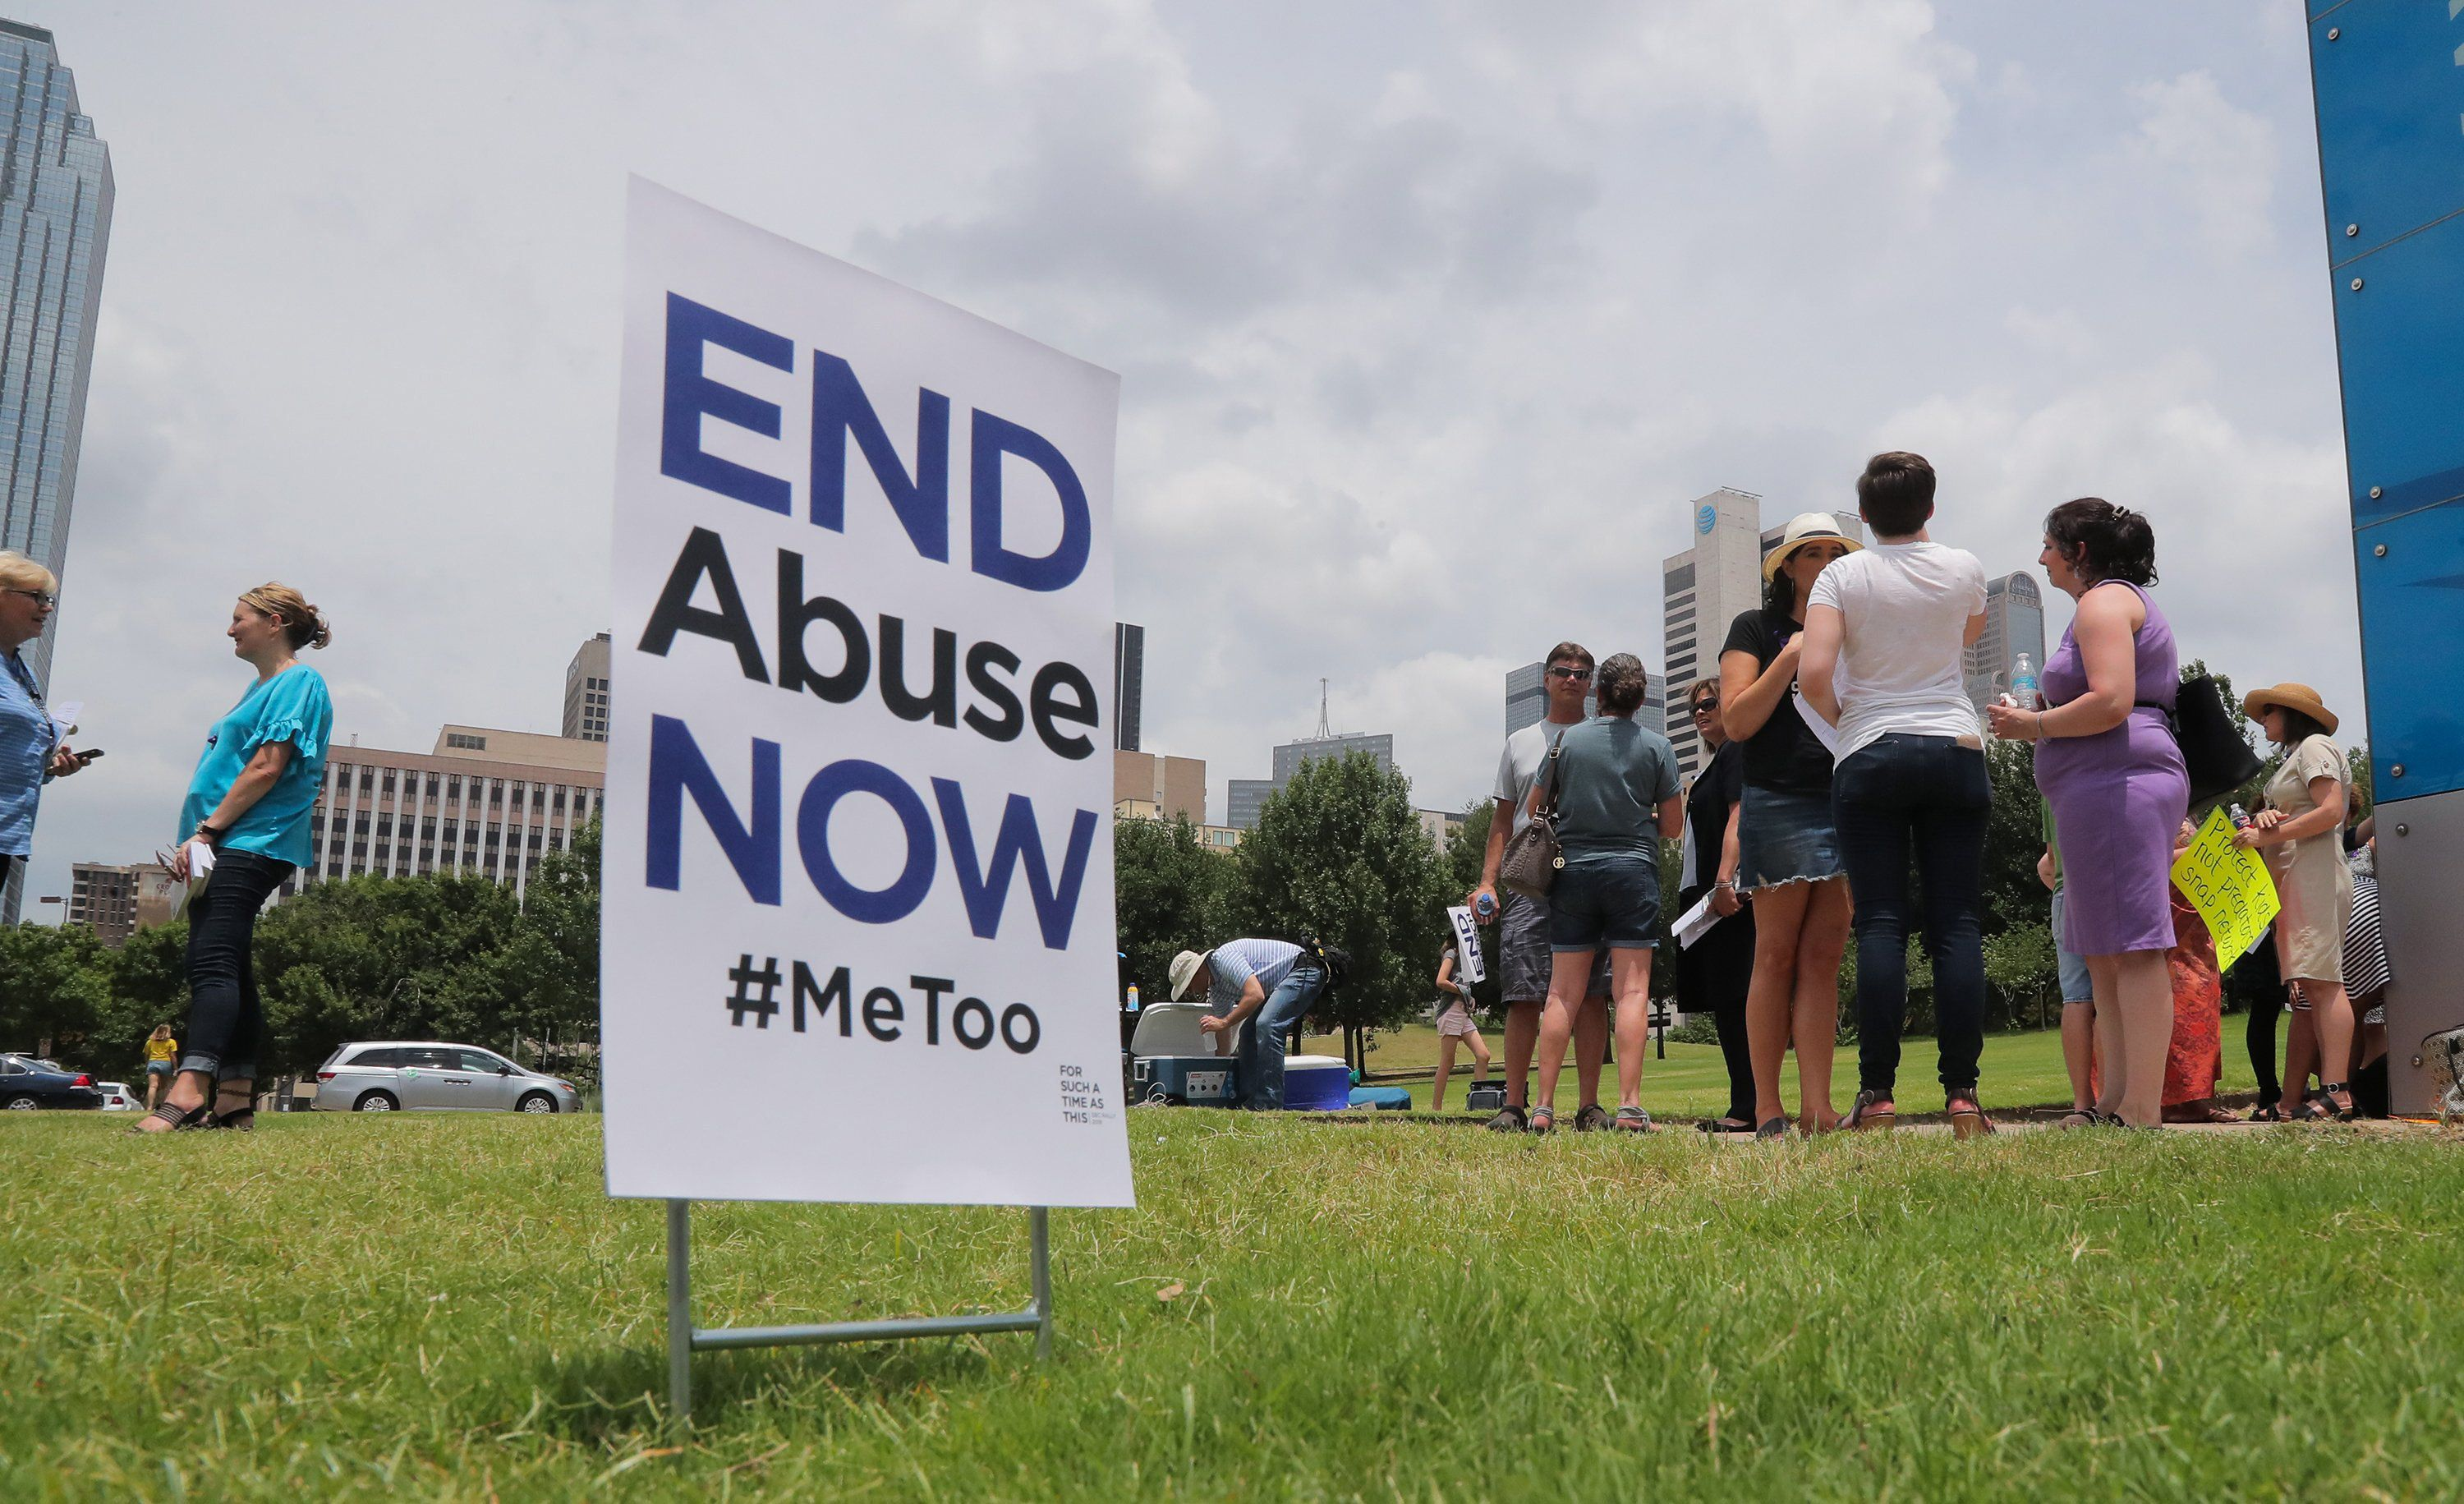 A small group of protesters fighting various forms of abuse within the church engage passersby outside at the Southern Baptist Convention meeting on Tuesday, June 12, 2018 in Dallas, Texas. (Rodger Mallison/Fort Worth Star-Telegram/TNS via Getty Images)